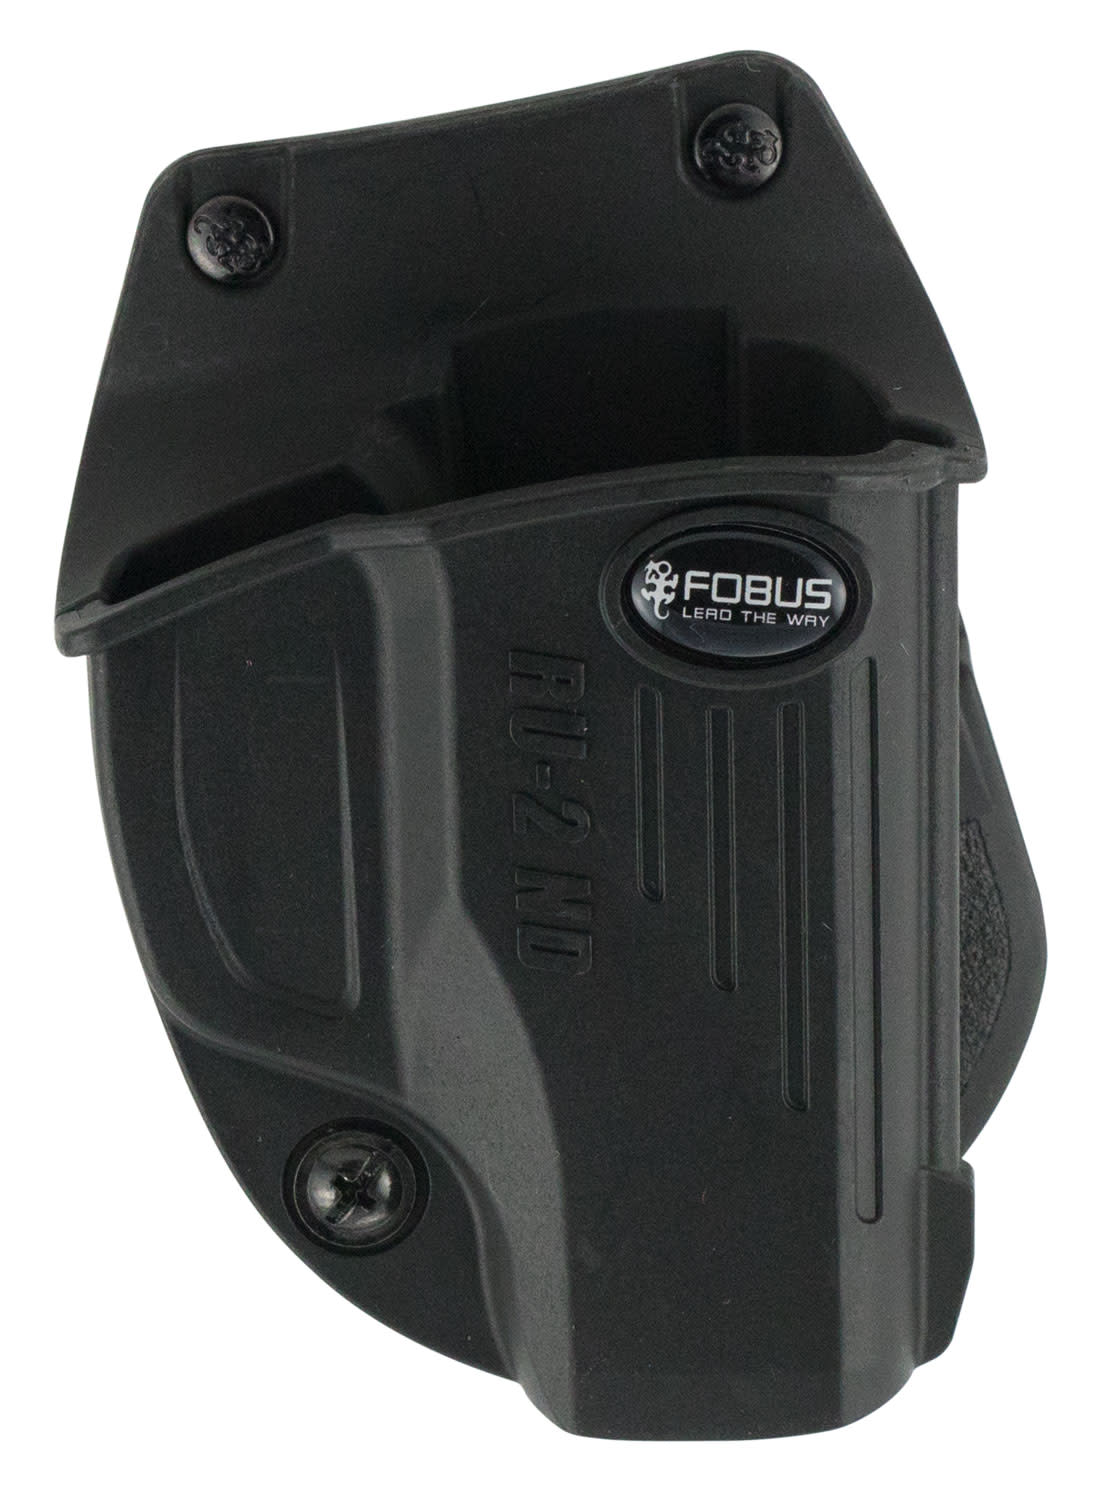 Fobus Evolution Paddle Holster - Diamondback FS9